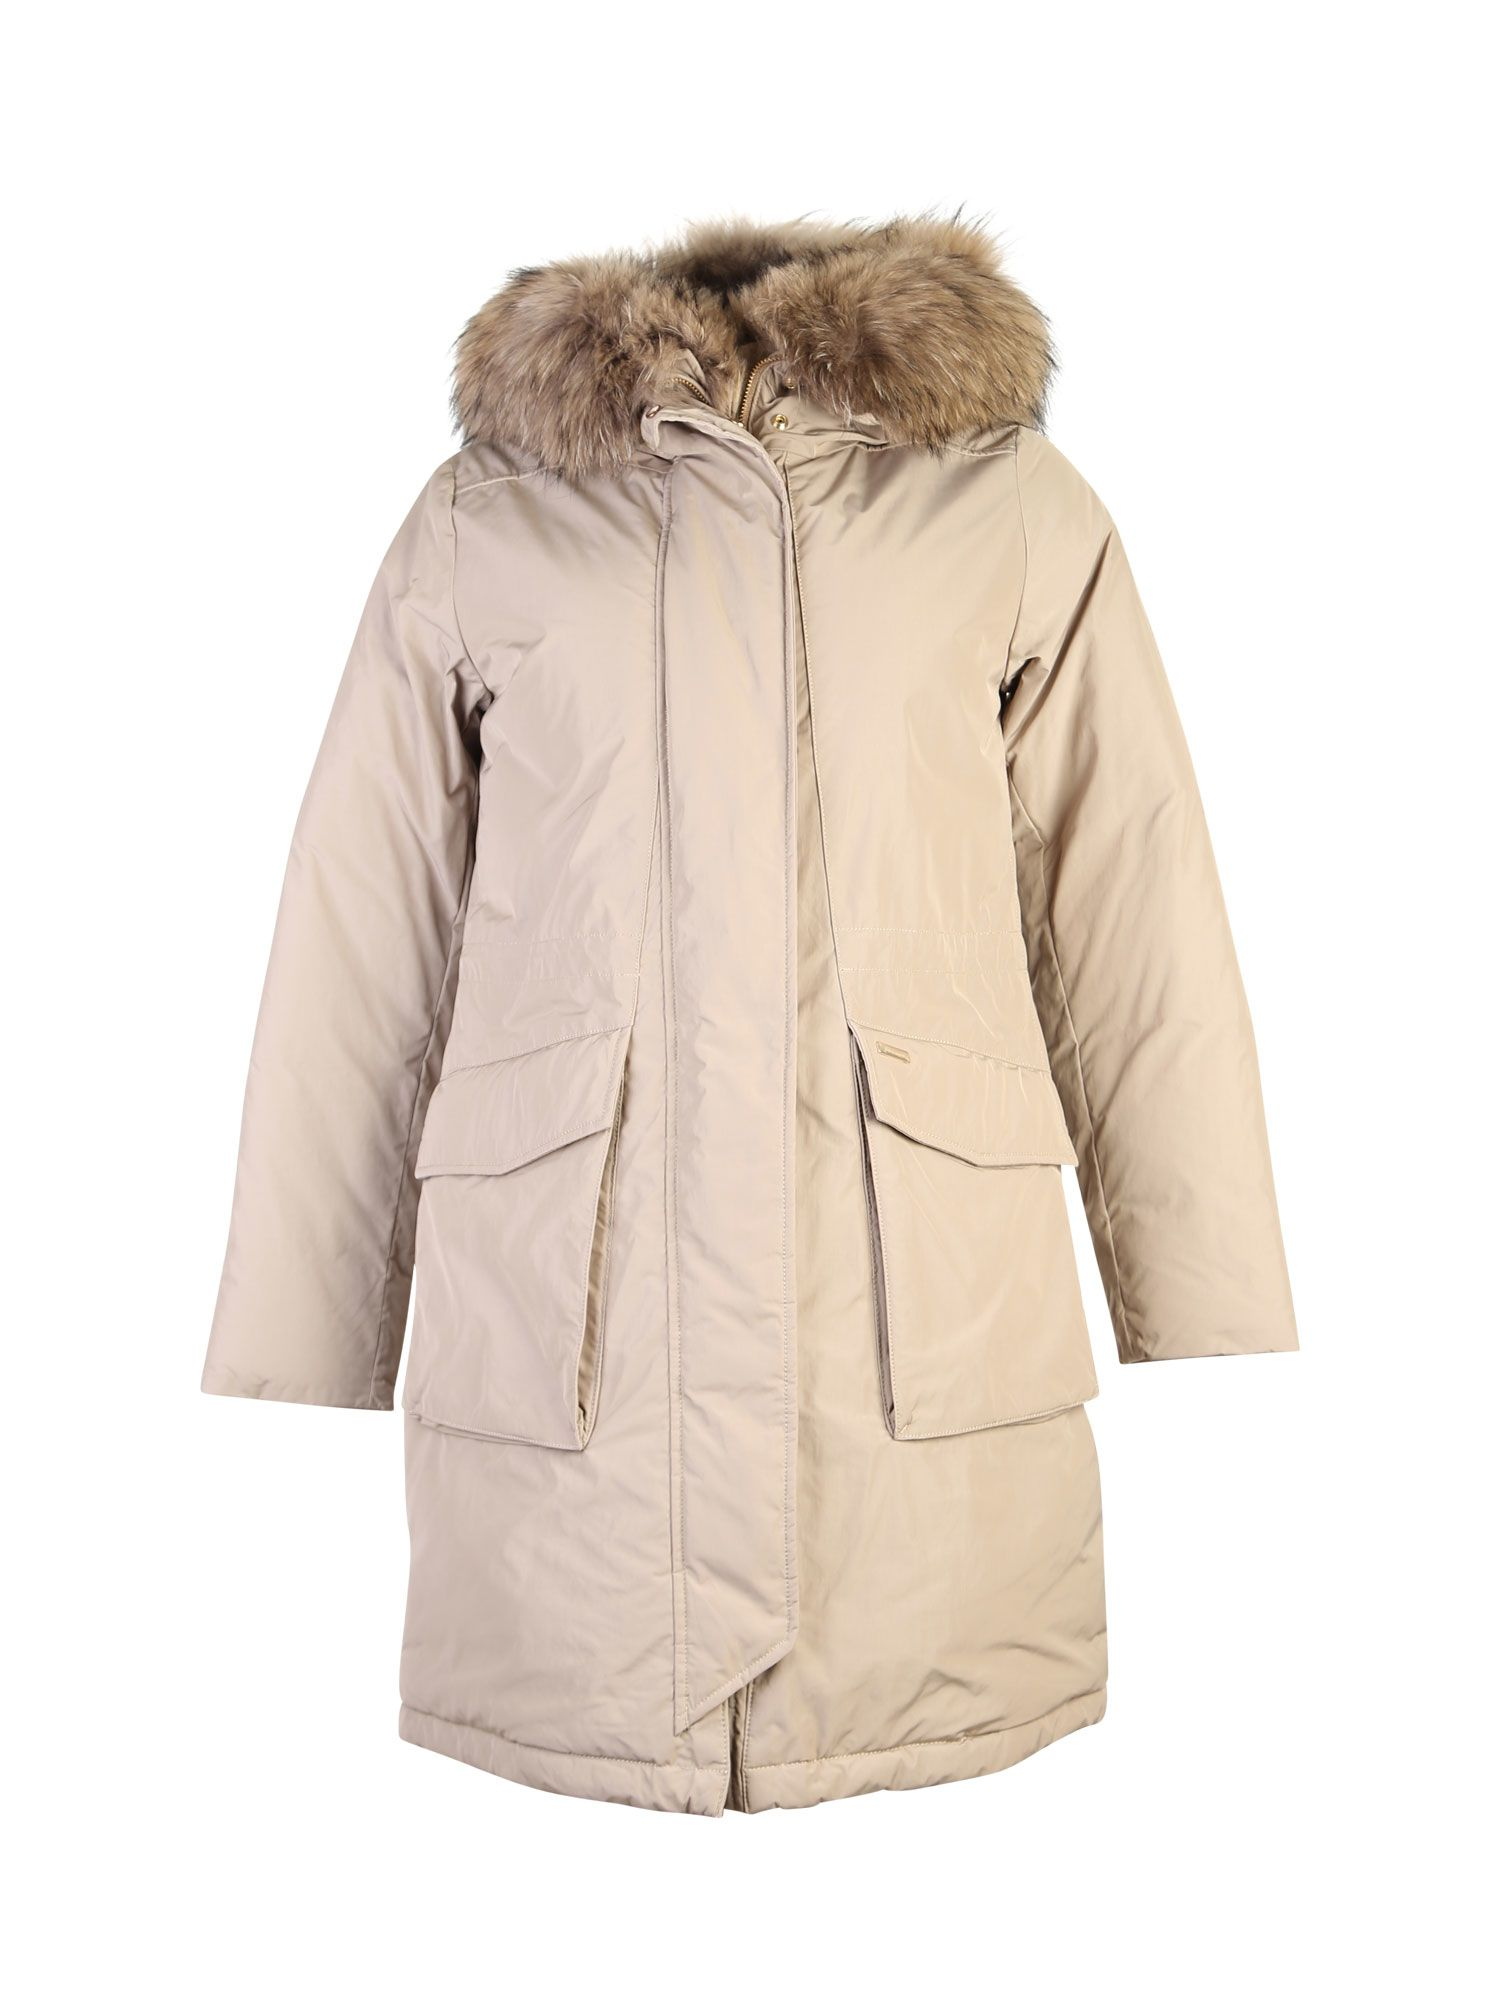 Parka Coat With Fur